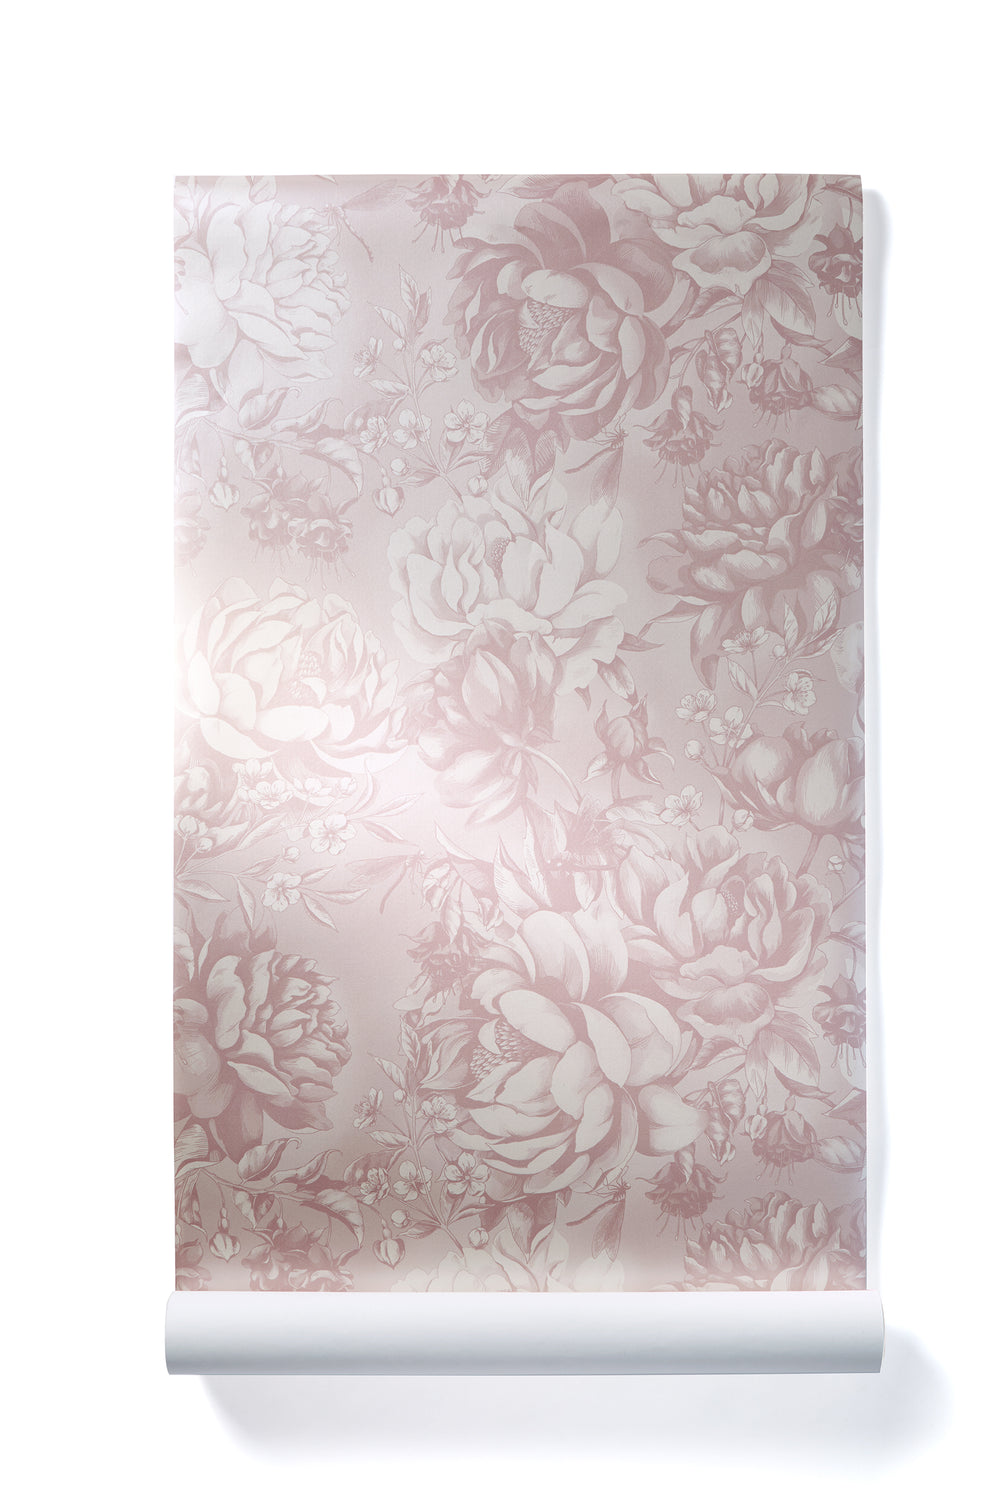 Infinite Heart - Oversized Blush Peony Floral Wallpaper, Shimmer Finish